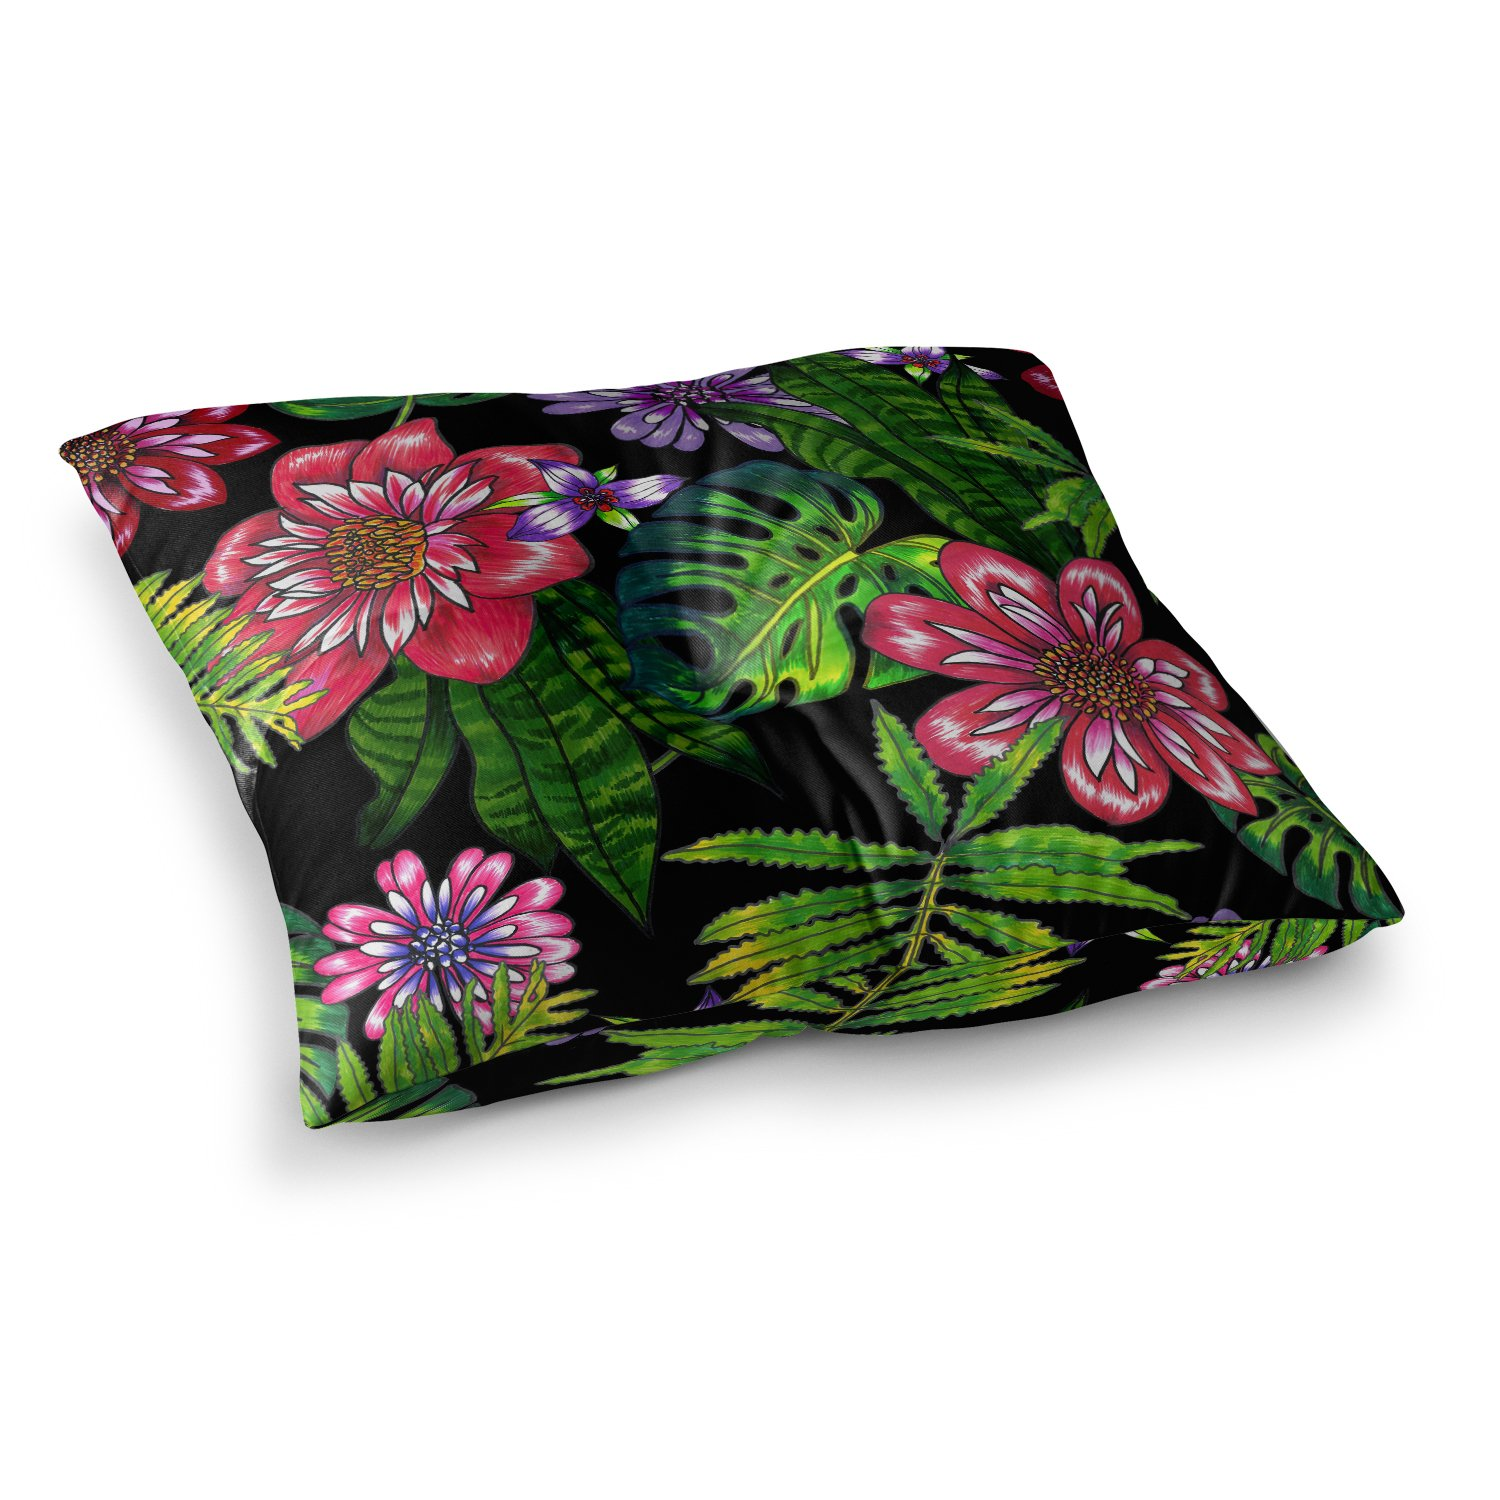 26 x 26 Square Floor Pillow Kess InHouse Victoria Krupp Doodle Tropic Green Pink